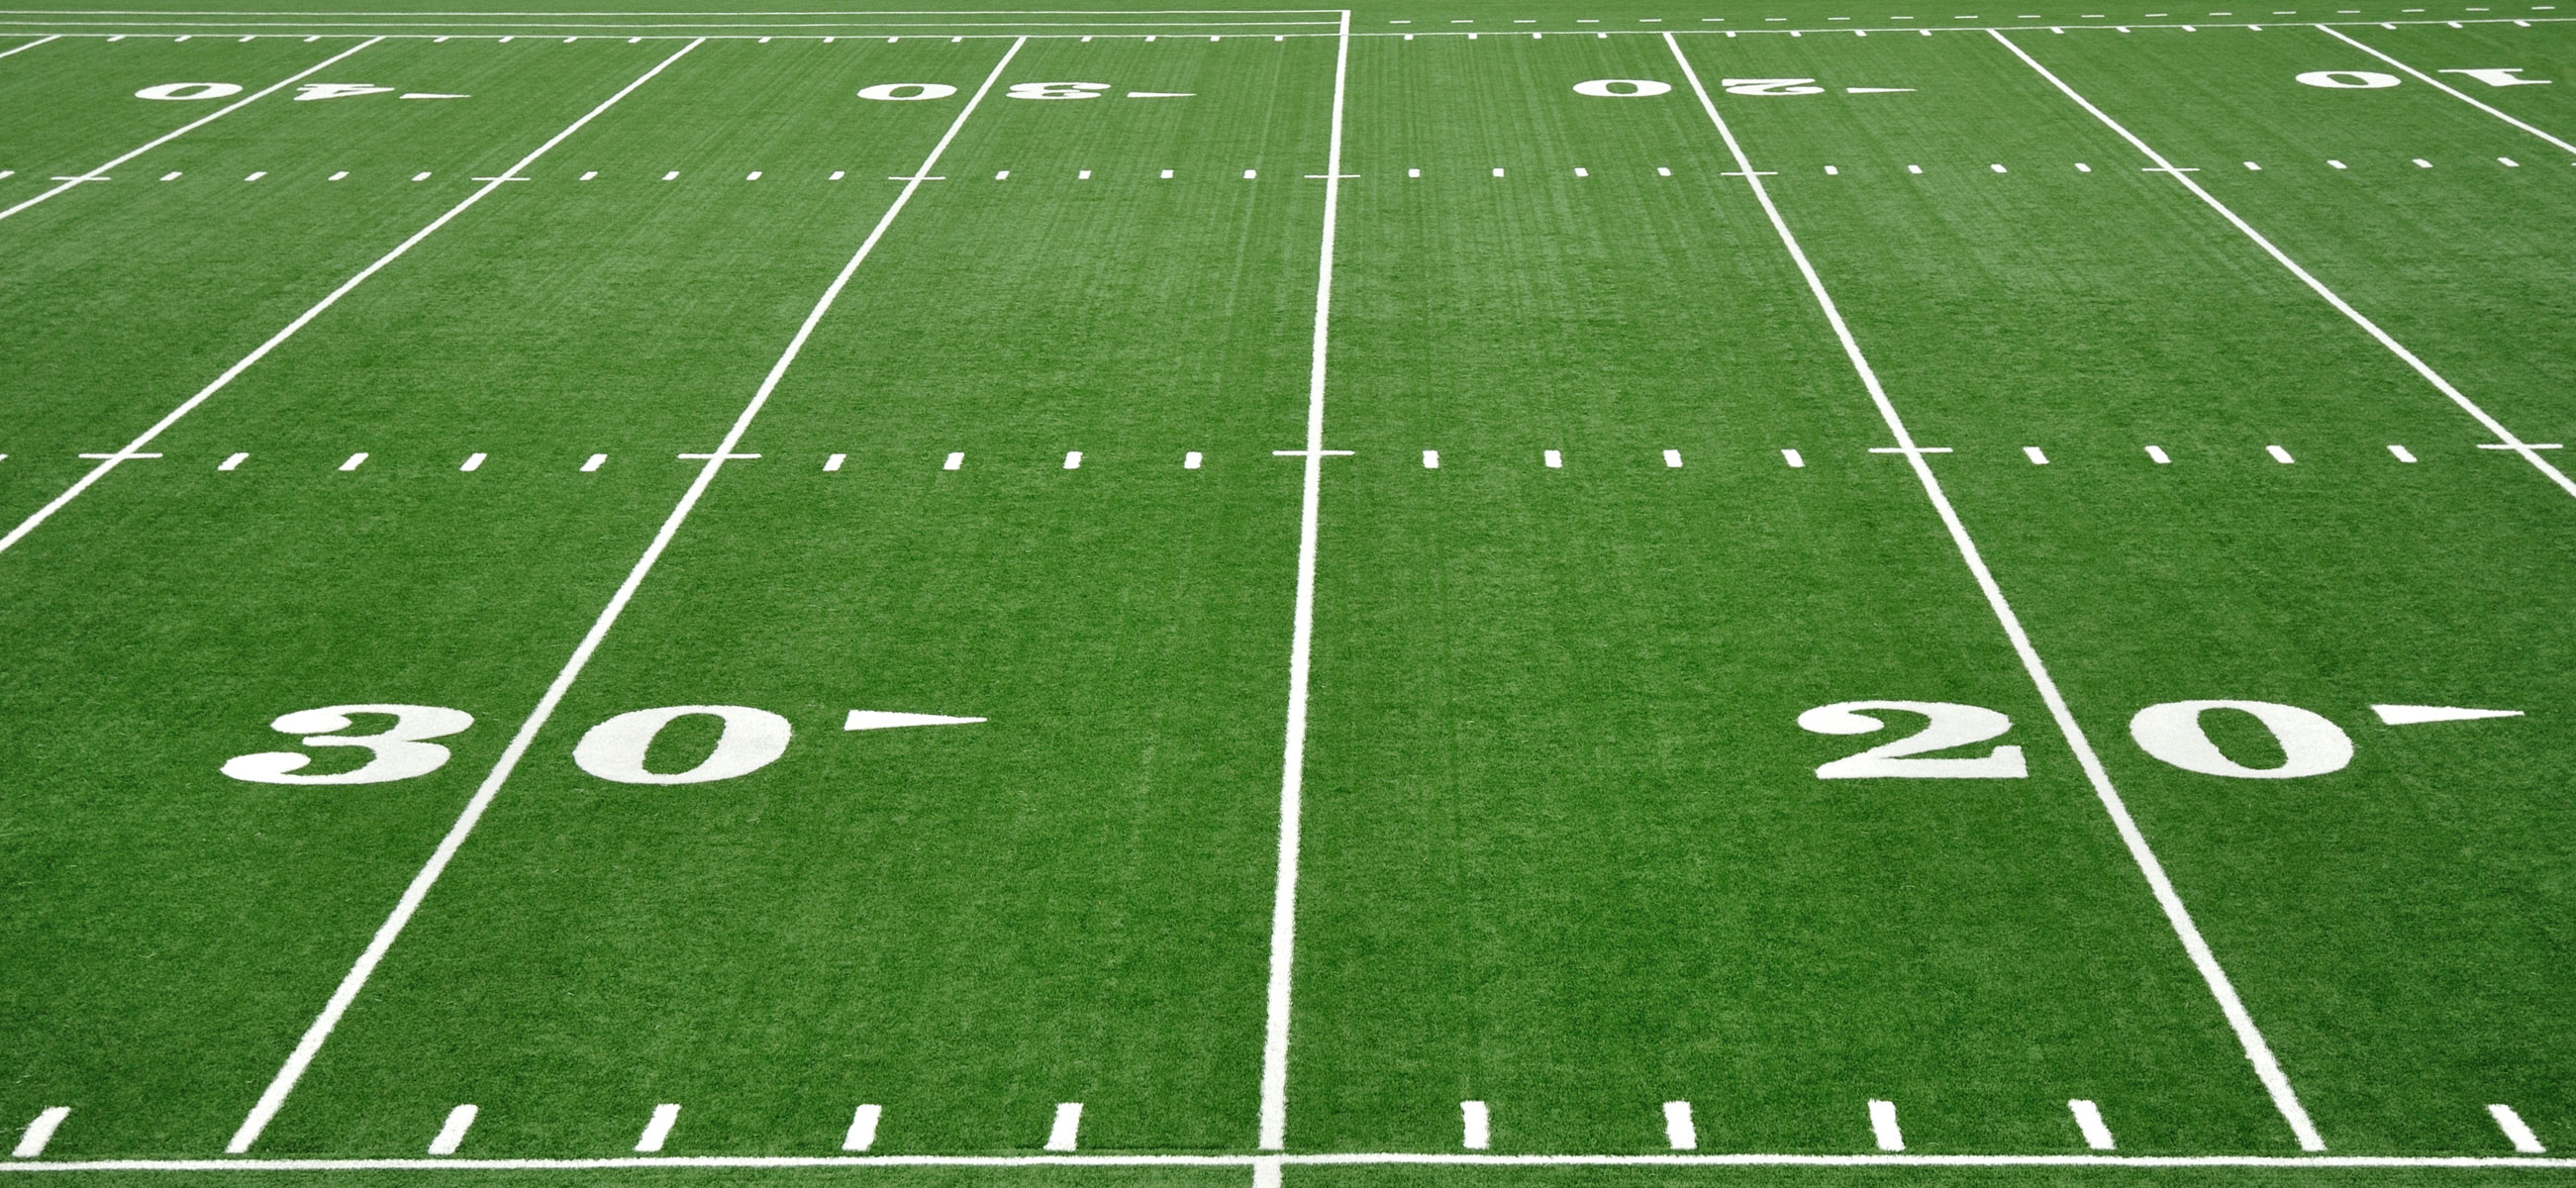 football-field-background-10023